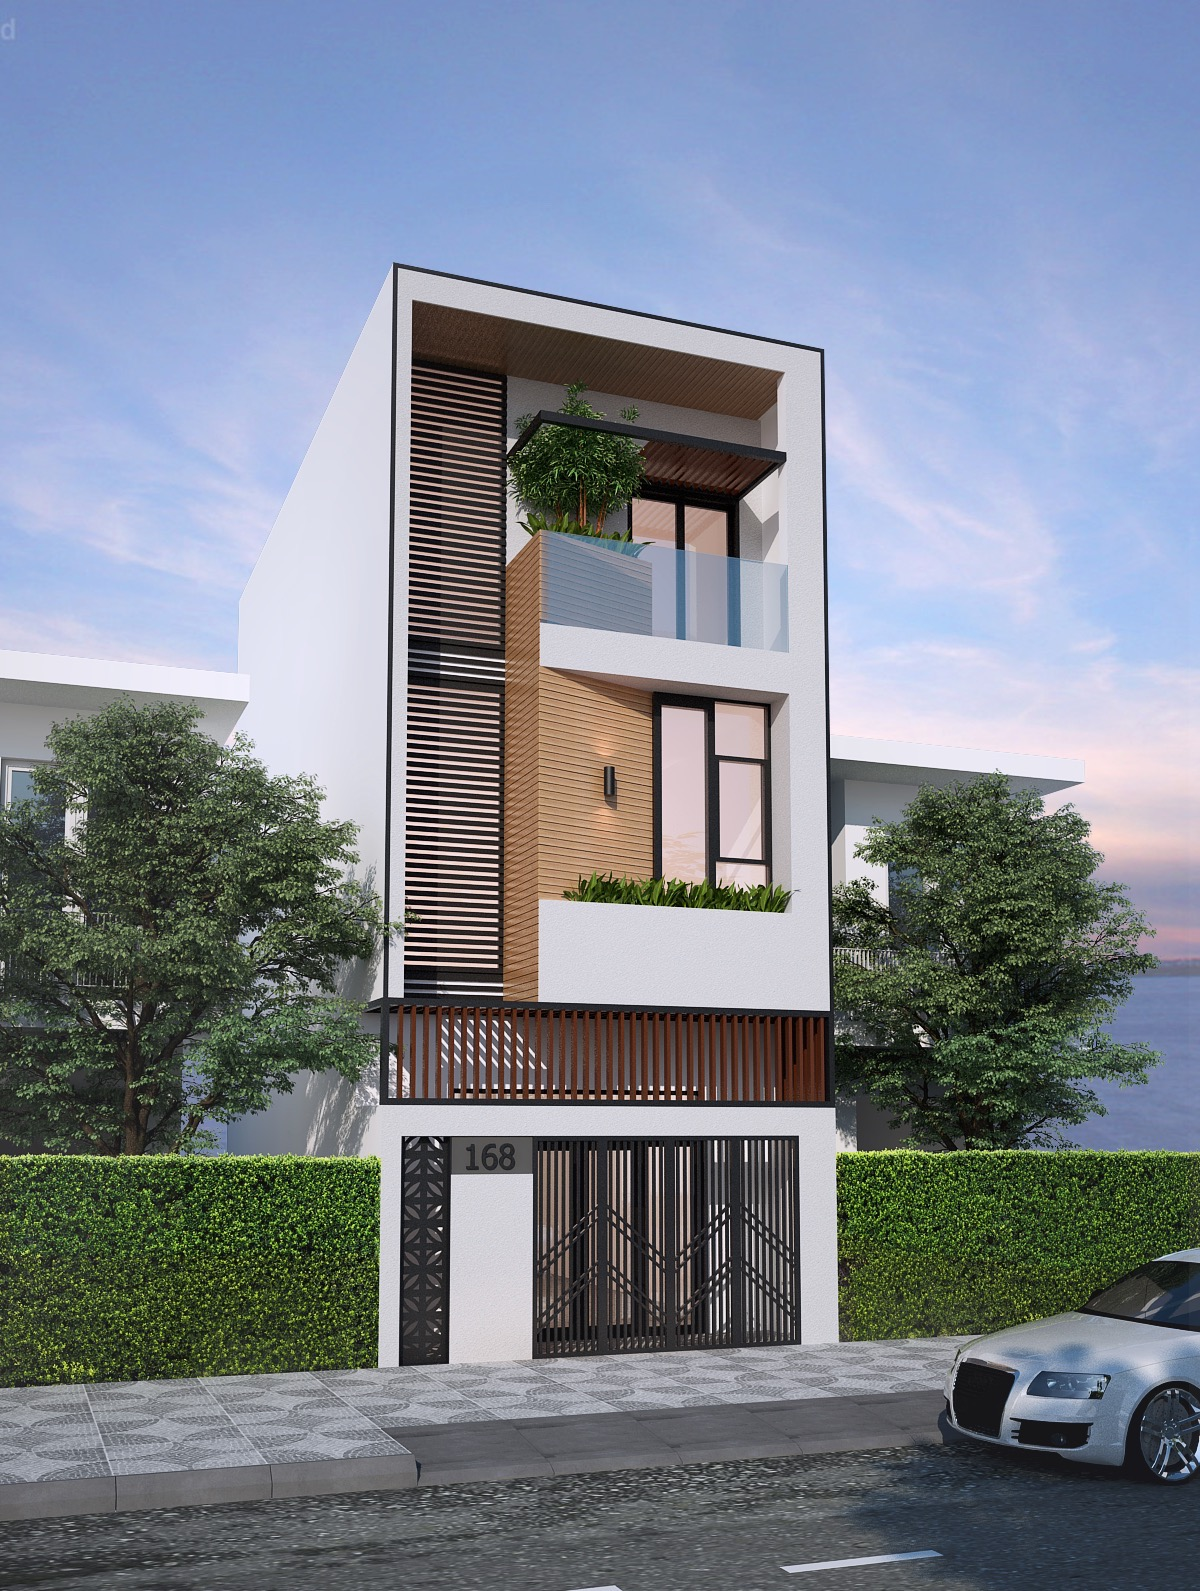 50 Narrow Lot Houses That Transform A Skinny Exterior Into ... on one bedroom house plan, one car garage office, 2 car garage door floor plan, one car garage barn, one car garage shed, one car garage cabinet, one car garage doors, one car garage studio, one car garage carport,